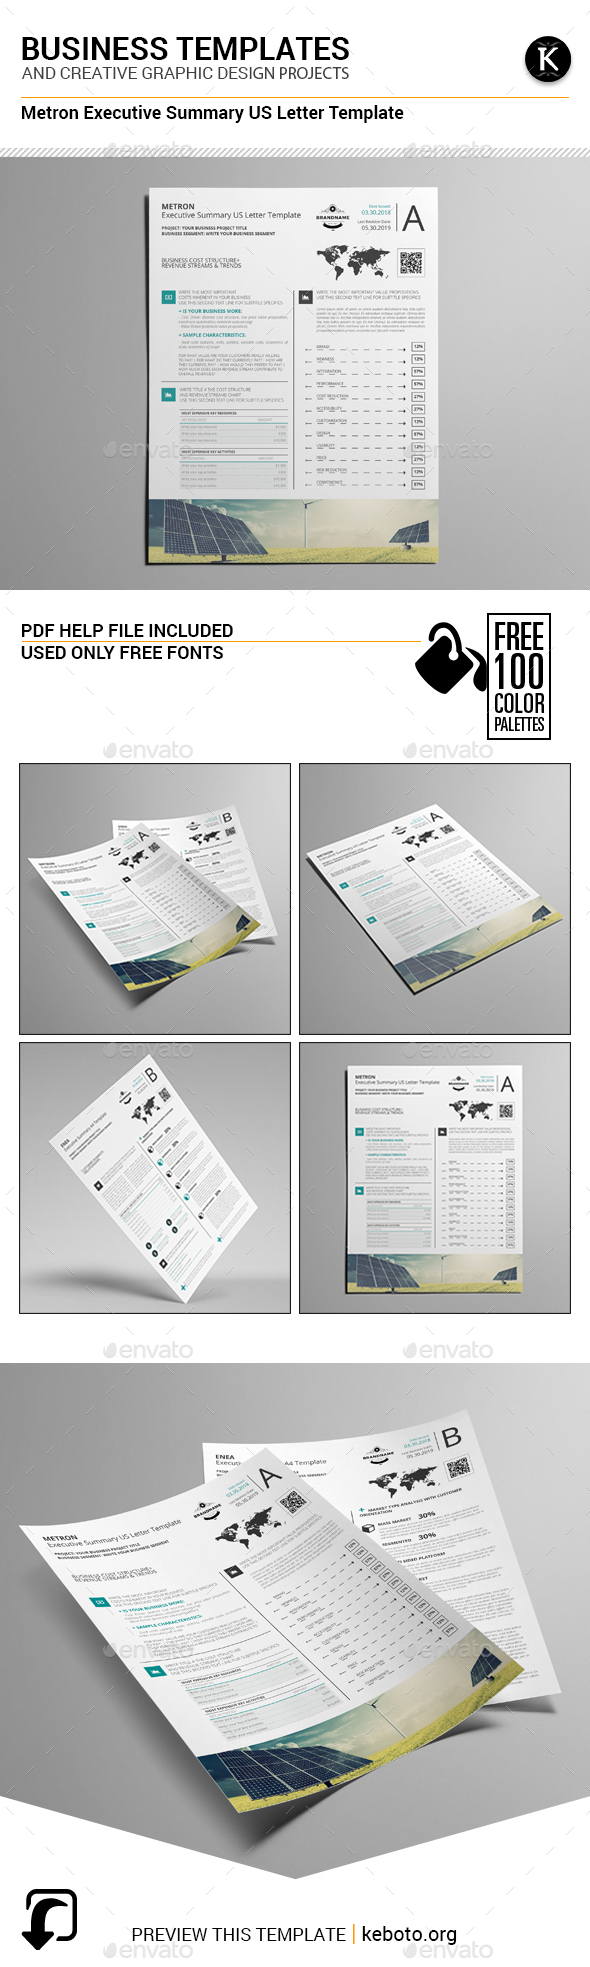 Metron Executive Summary US Letter Template - Miscellaneous Print Templates